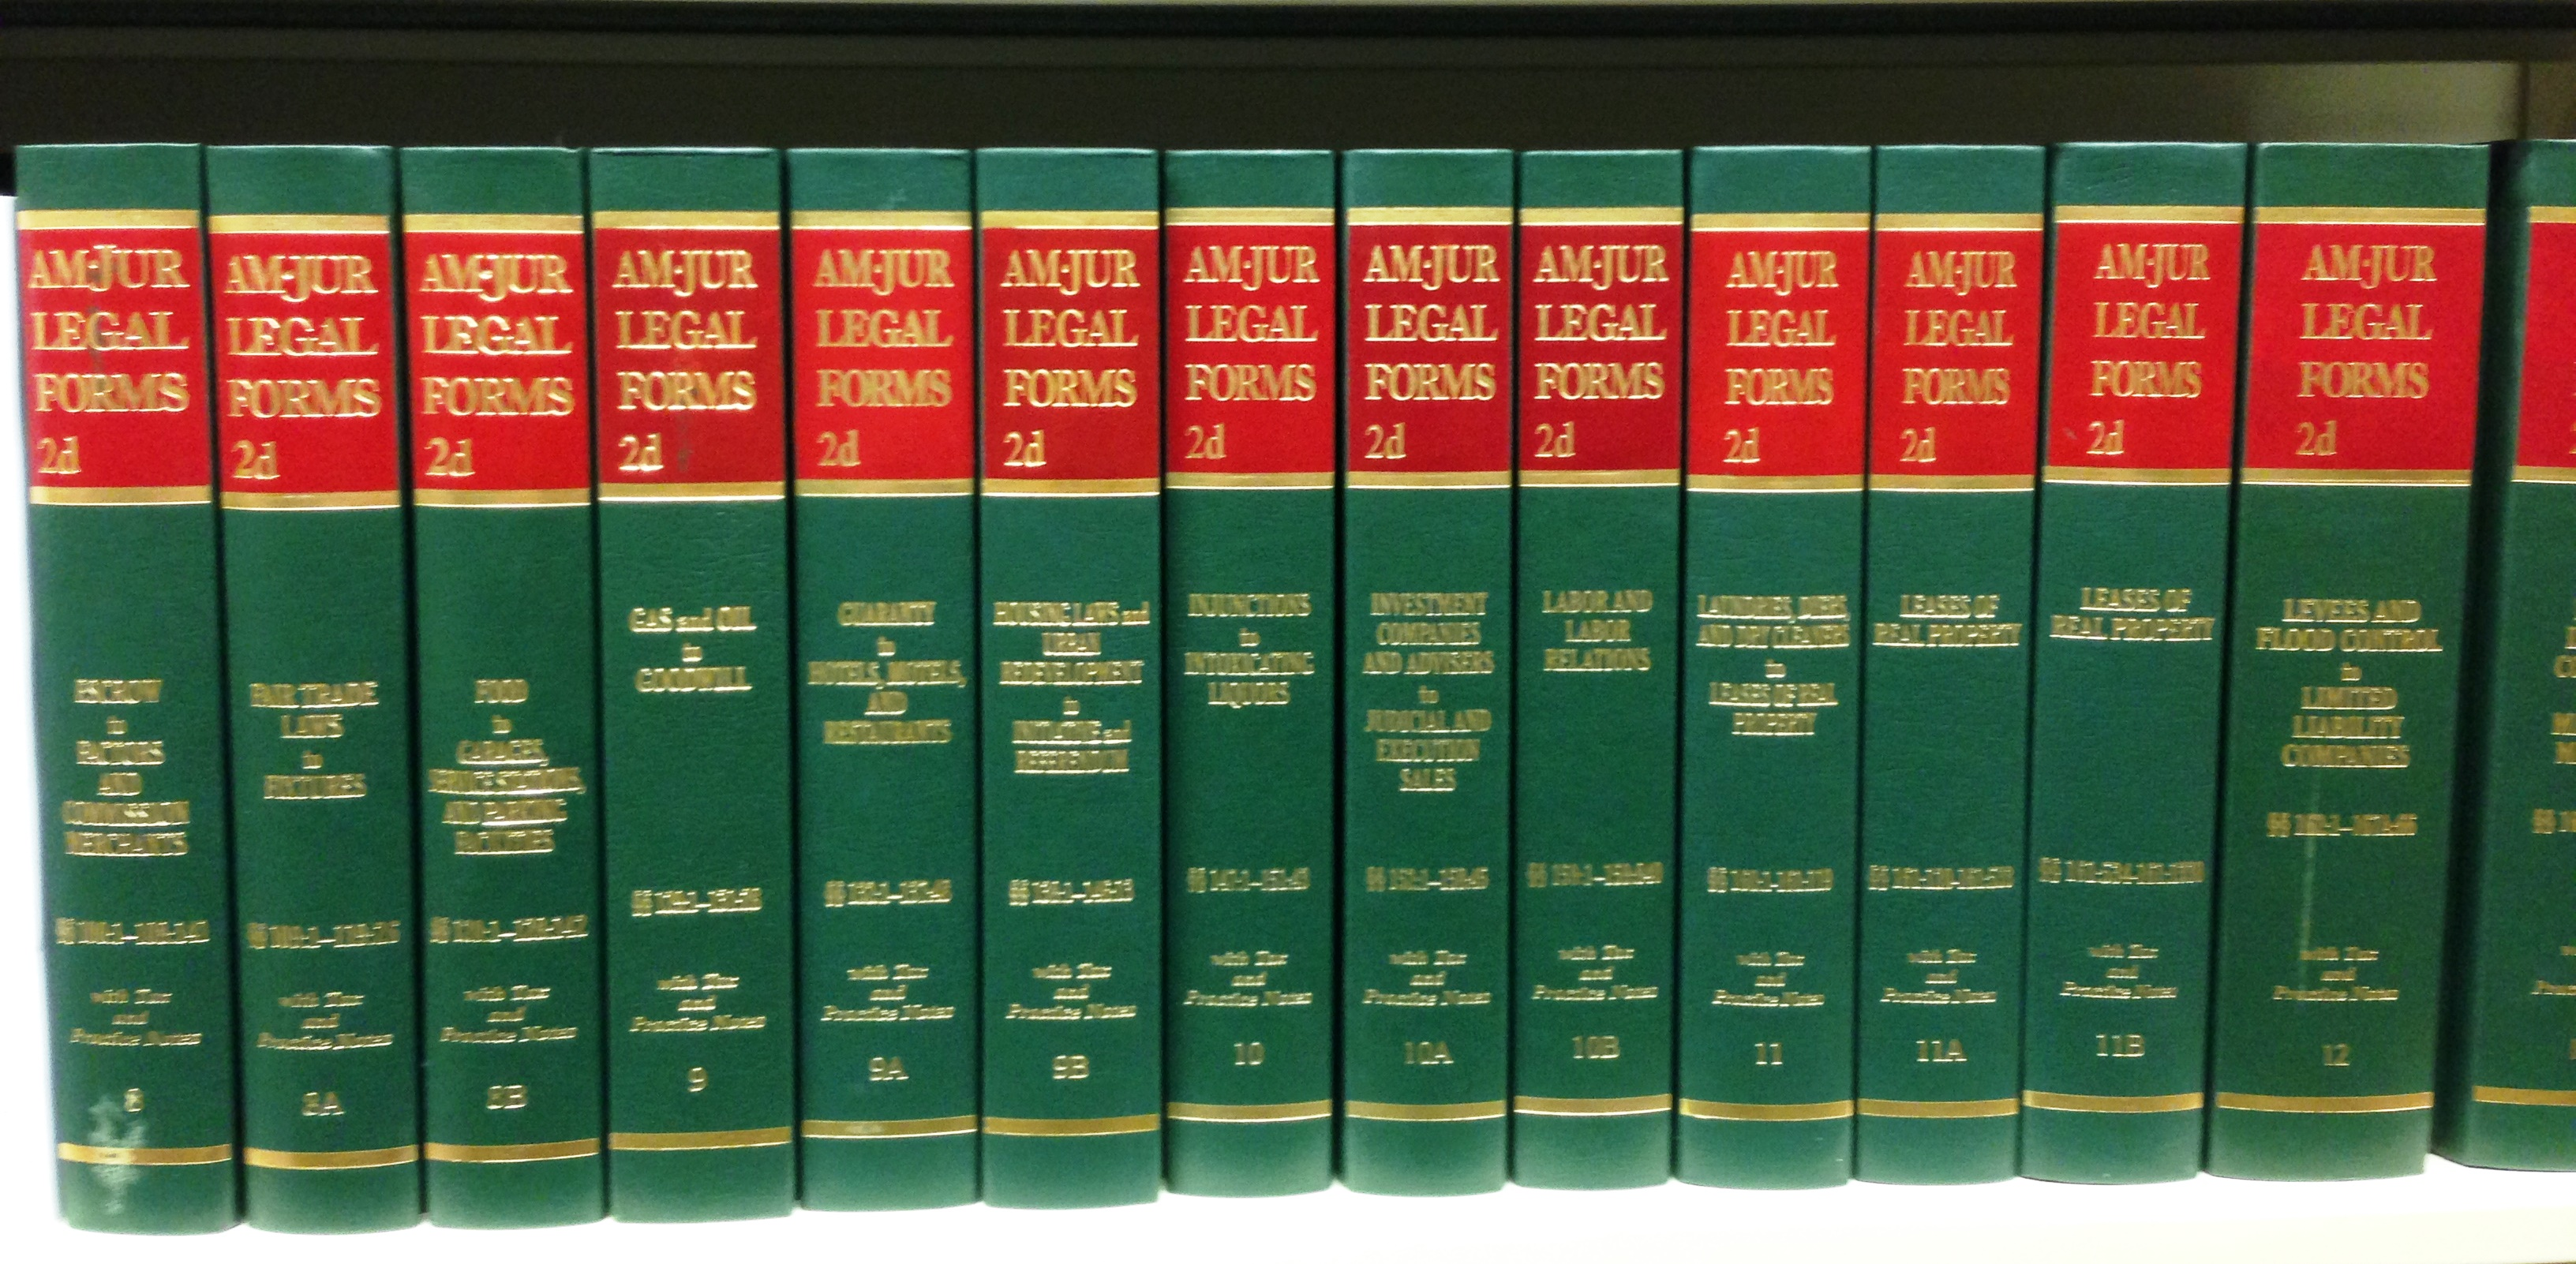 New Materials Alert AACPLL Blog - American legal forms